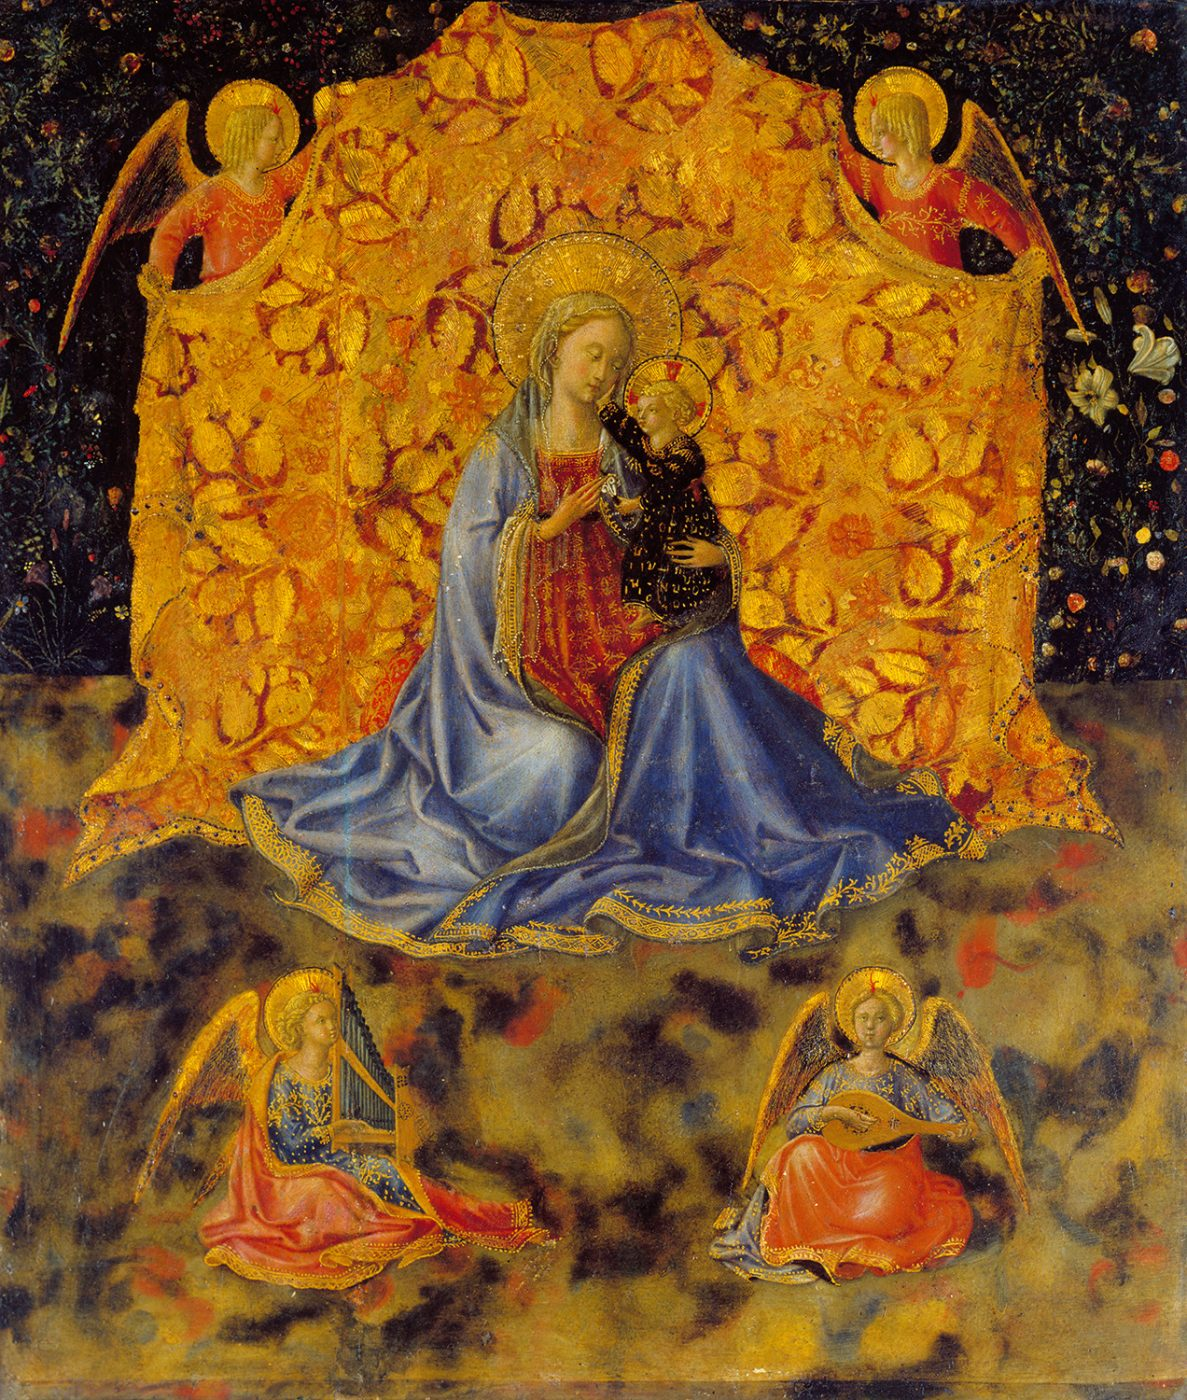 Benozzo Gozzoli, The Madonna and Child with Angels, c. 1449-50 (Fondazione Accademia Carrara, Bergamo)